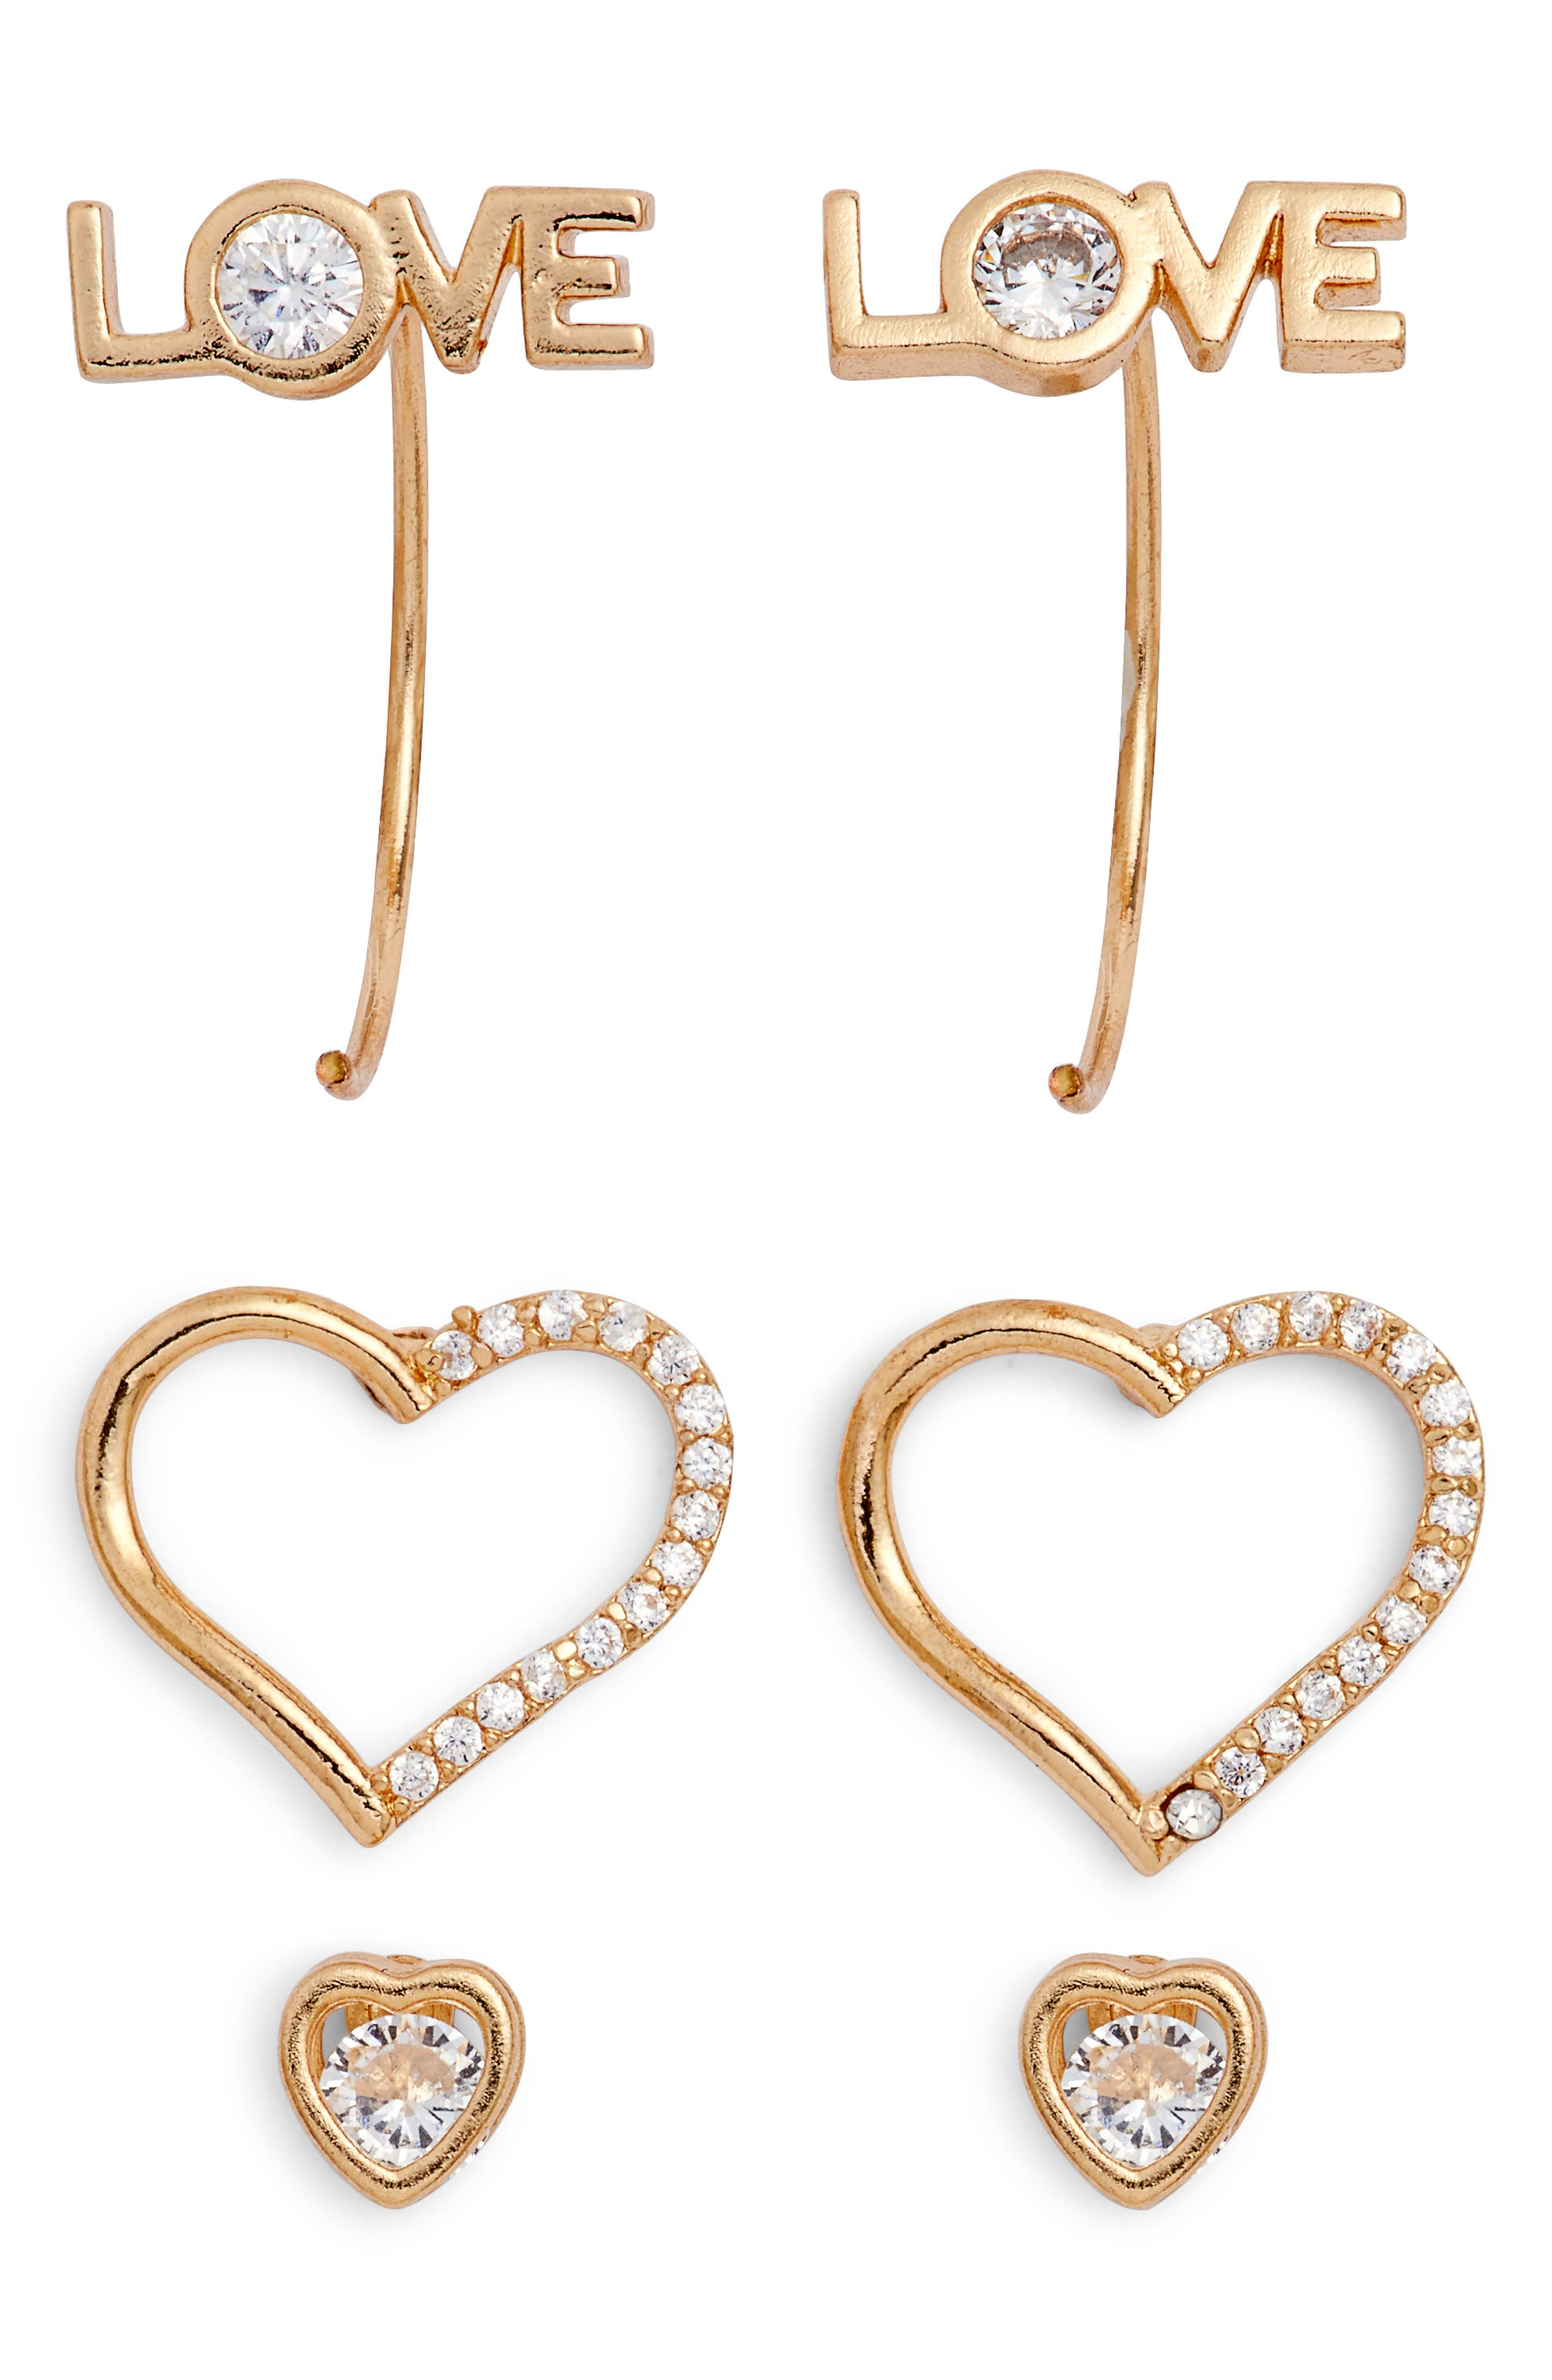 Love 3-Pack Assorted Earrings,                         Main,                         color, Gold